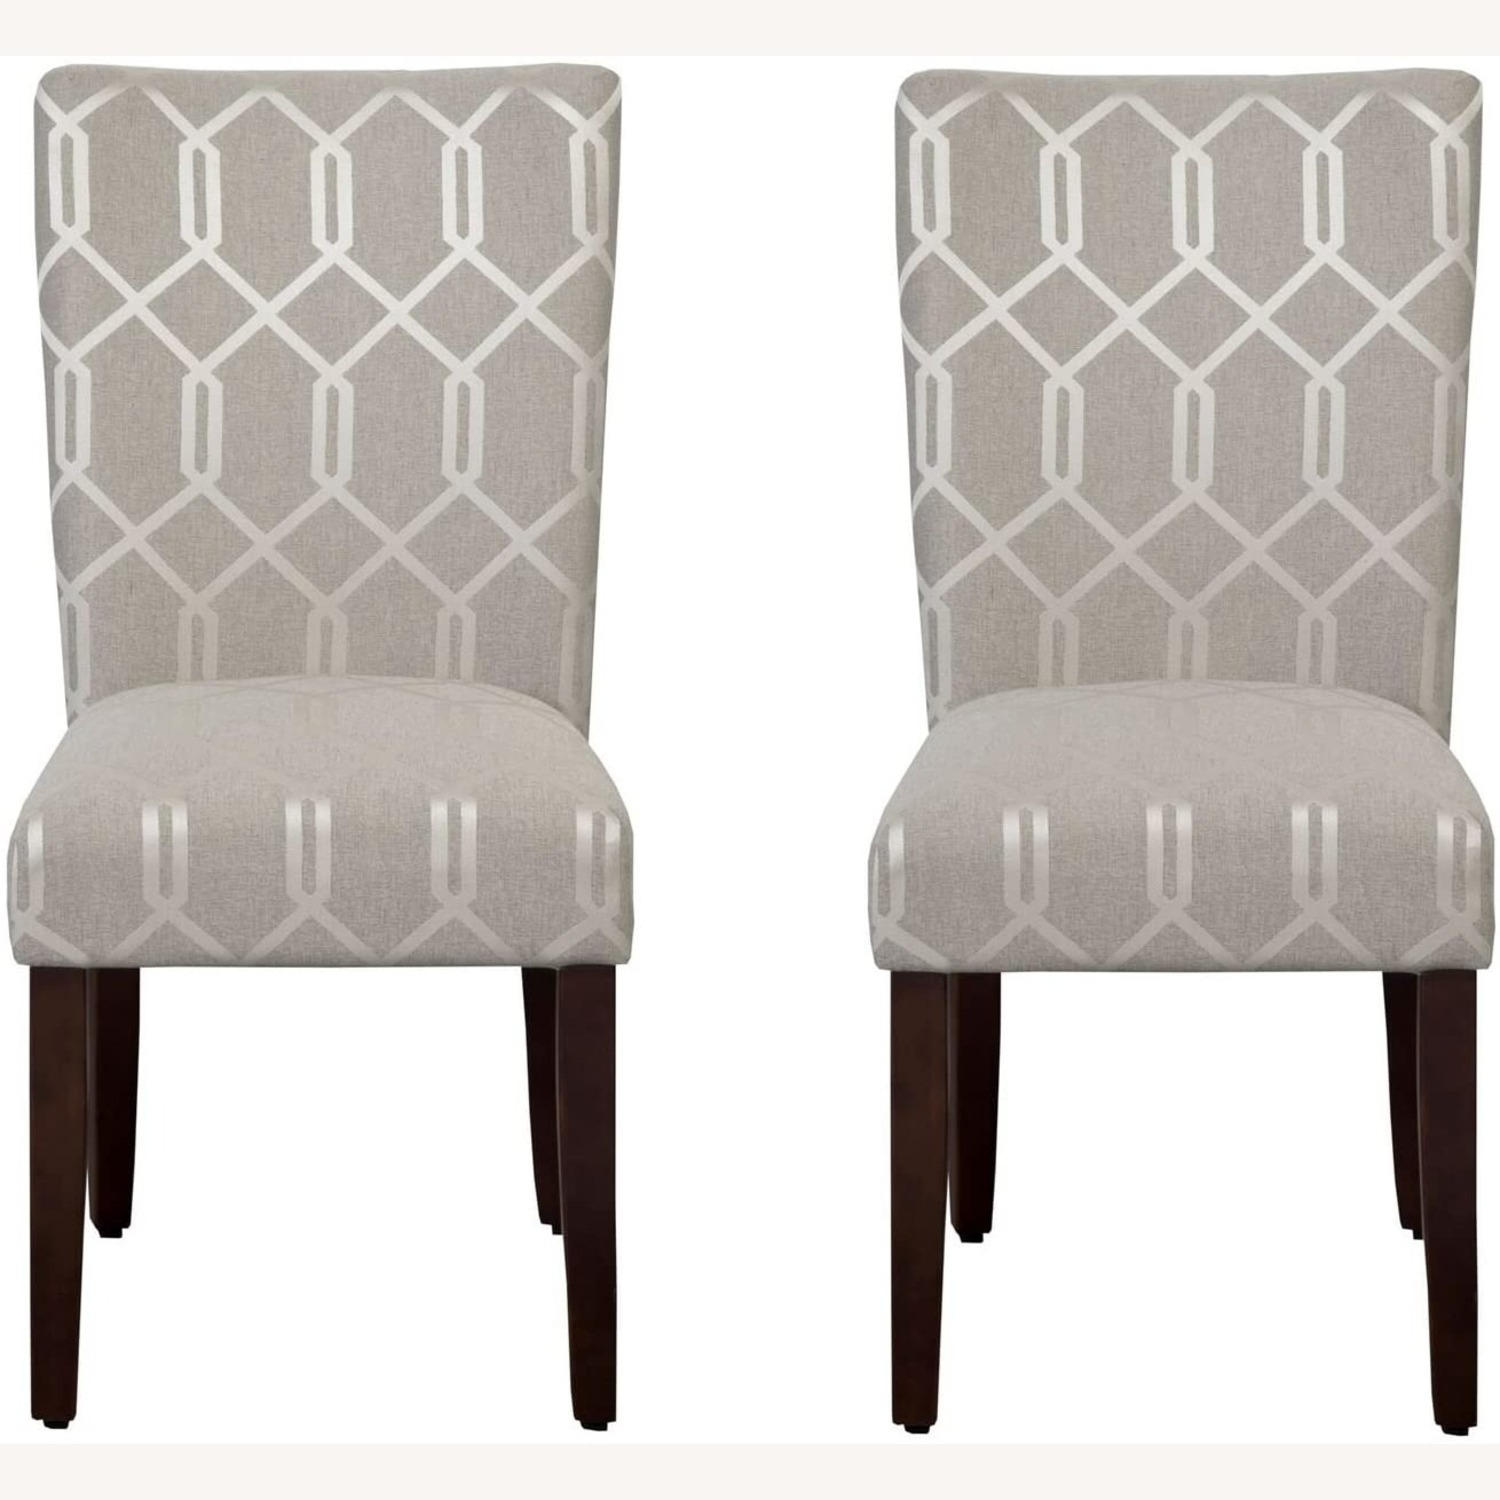 Upholstered Accent Dining Chair - image-3